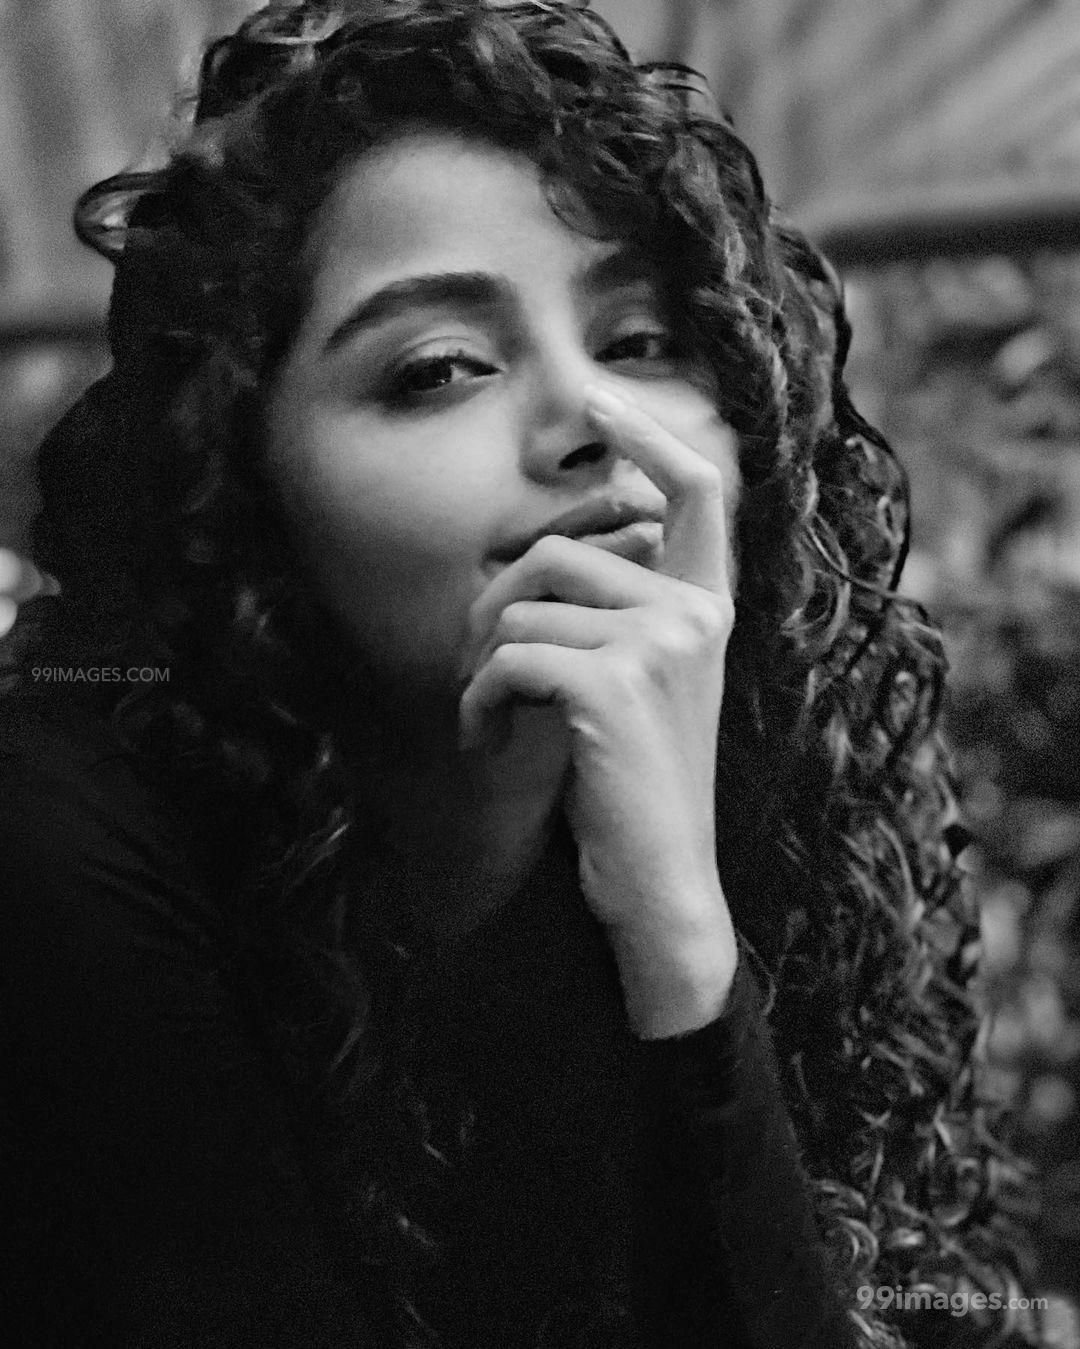 Anupama Parameswaran HD Wallpapers (Desktop Background / Android / iPhone) (1080p, 4k) (804180) - Anupama Parameswaran